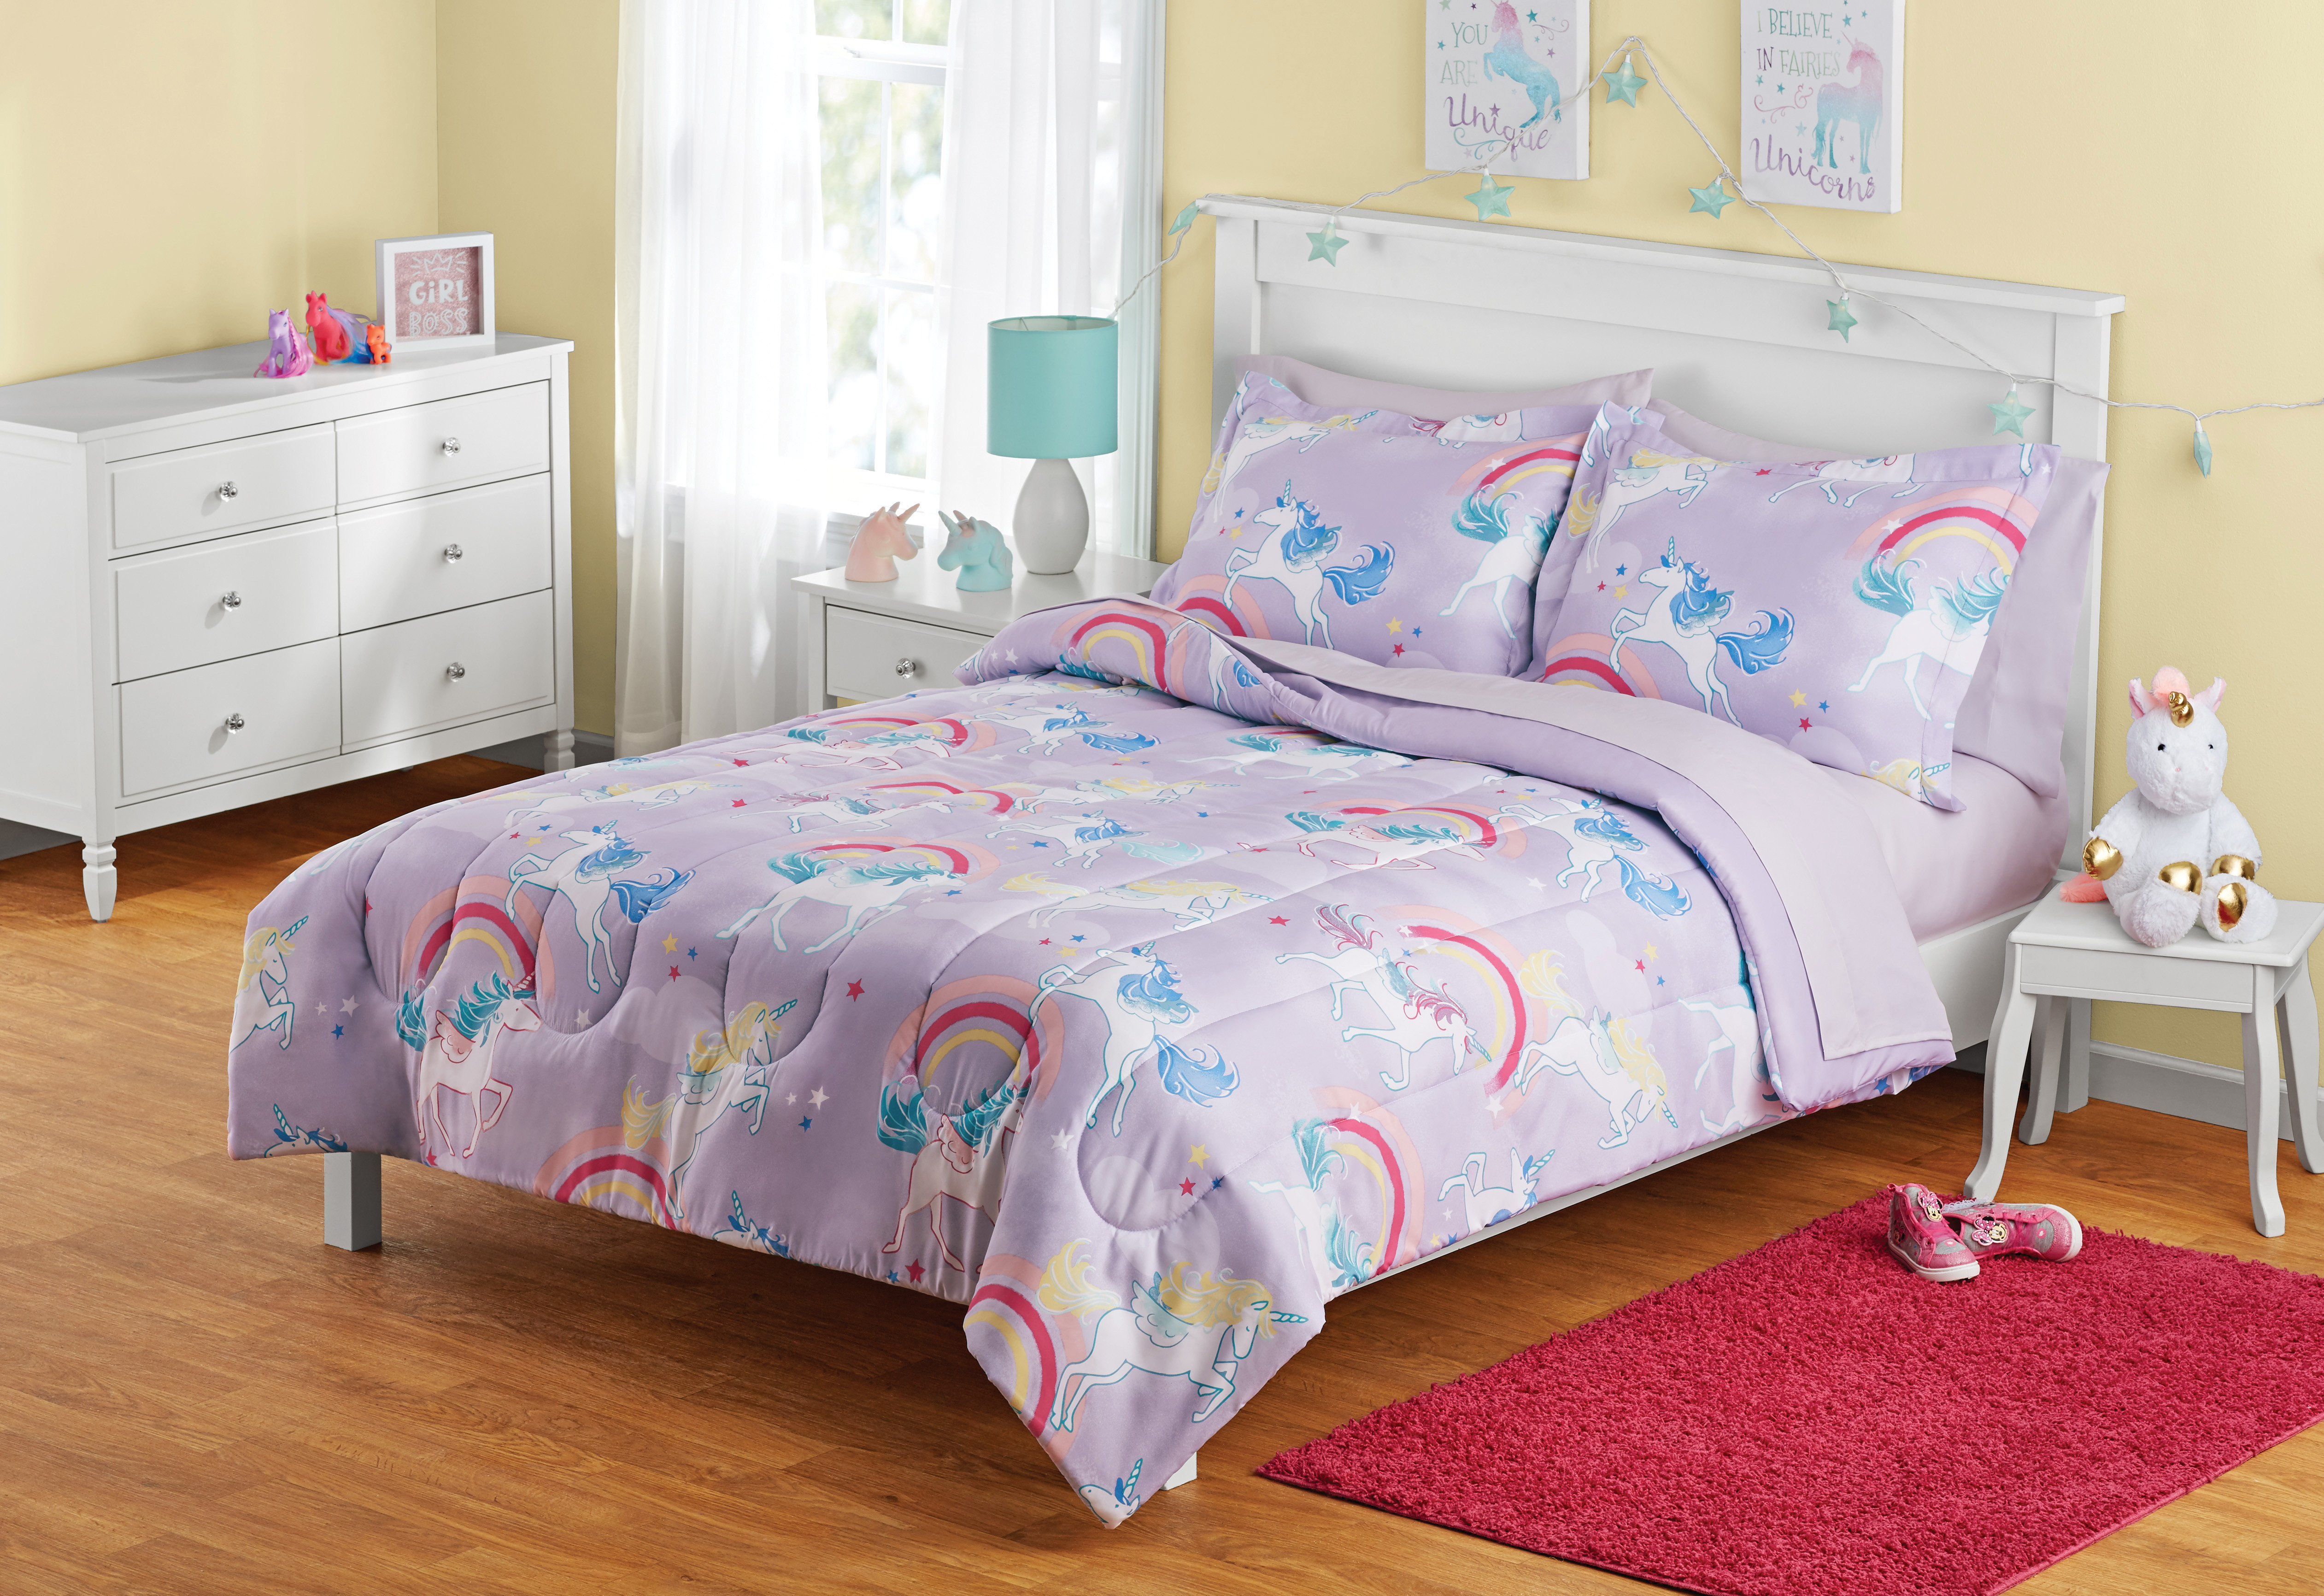 Your Zone Unicorn Bed-in-a-Bag Coordinating Bedding Set